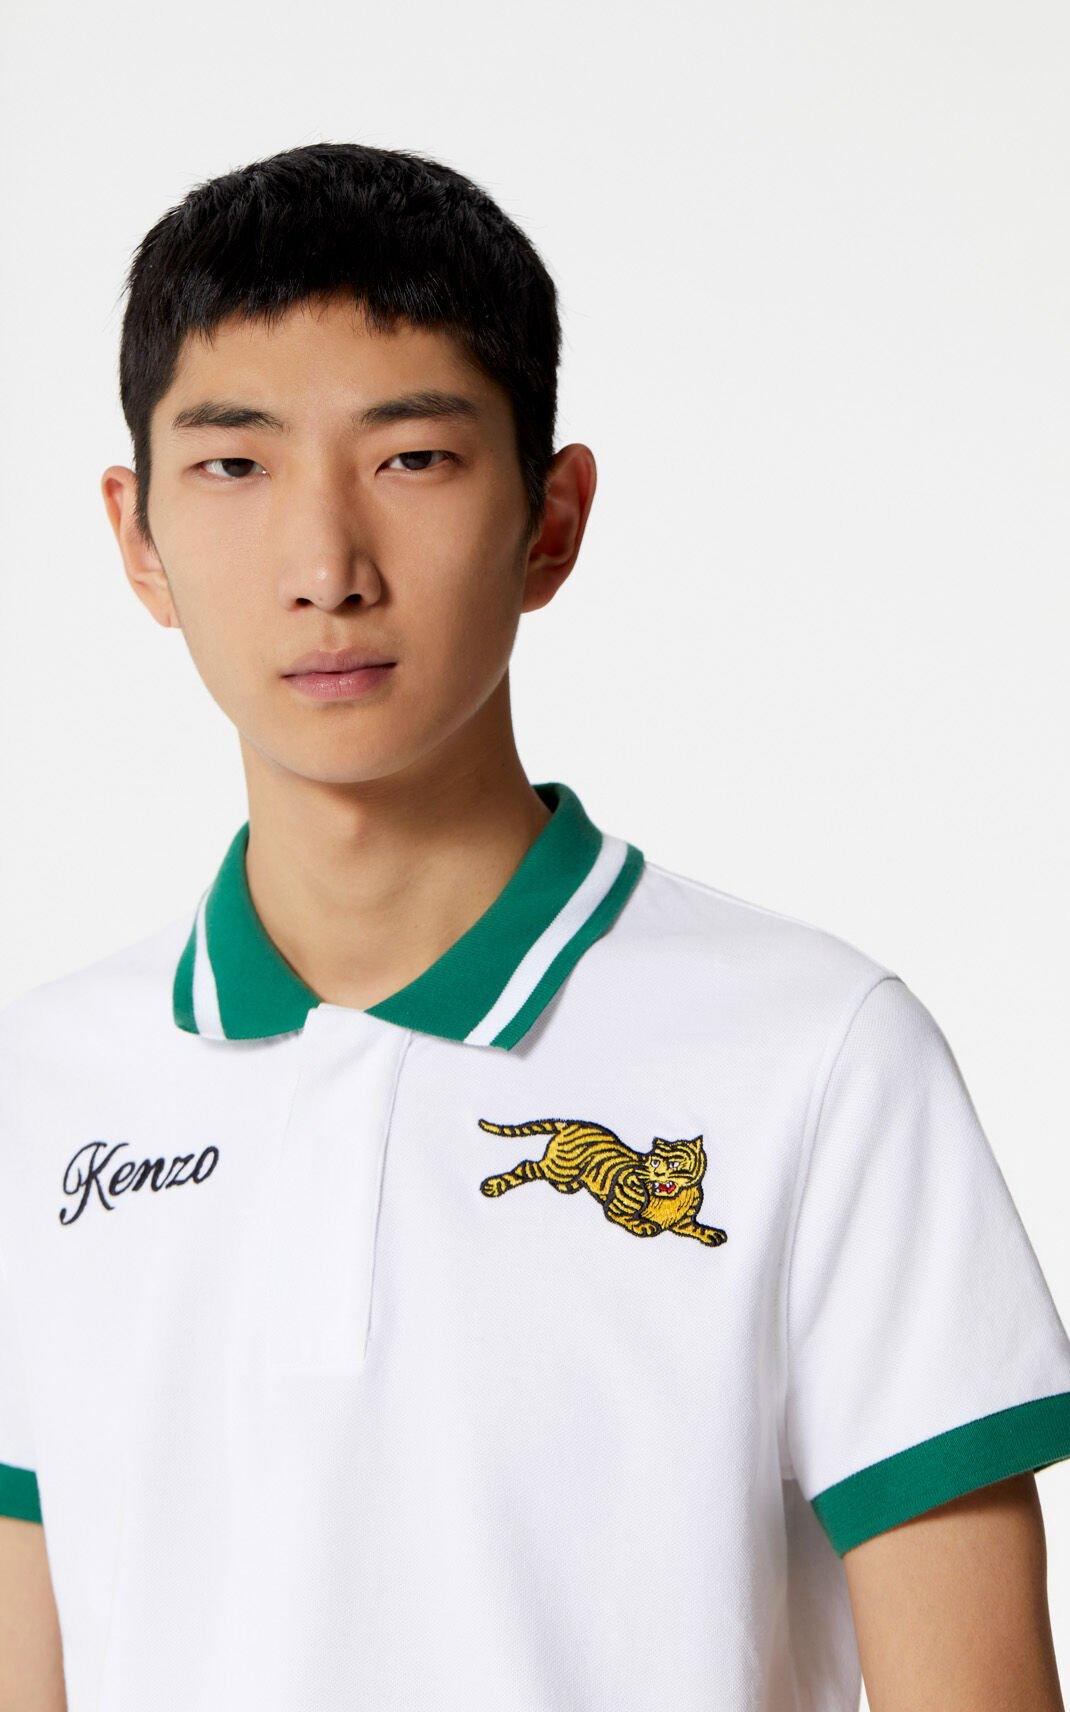 ... canada white jumping tiger slim fit polo shirt for men kenzo d065b 31383 29c2e285a319a